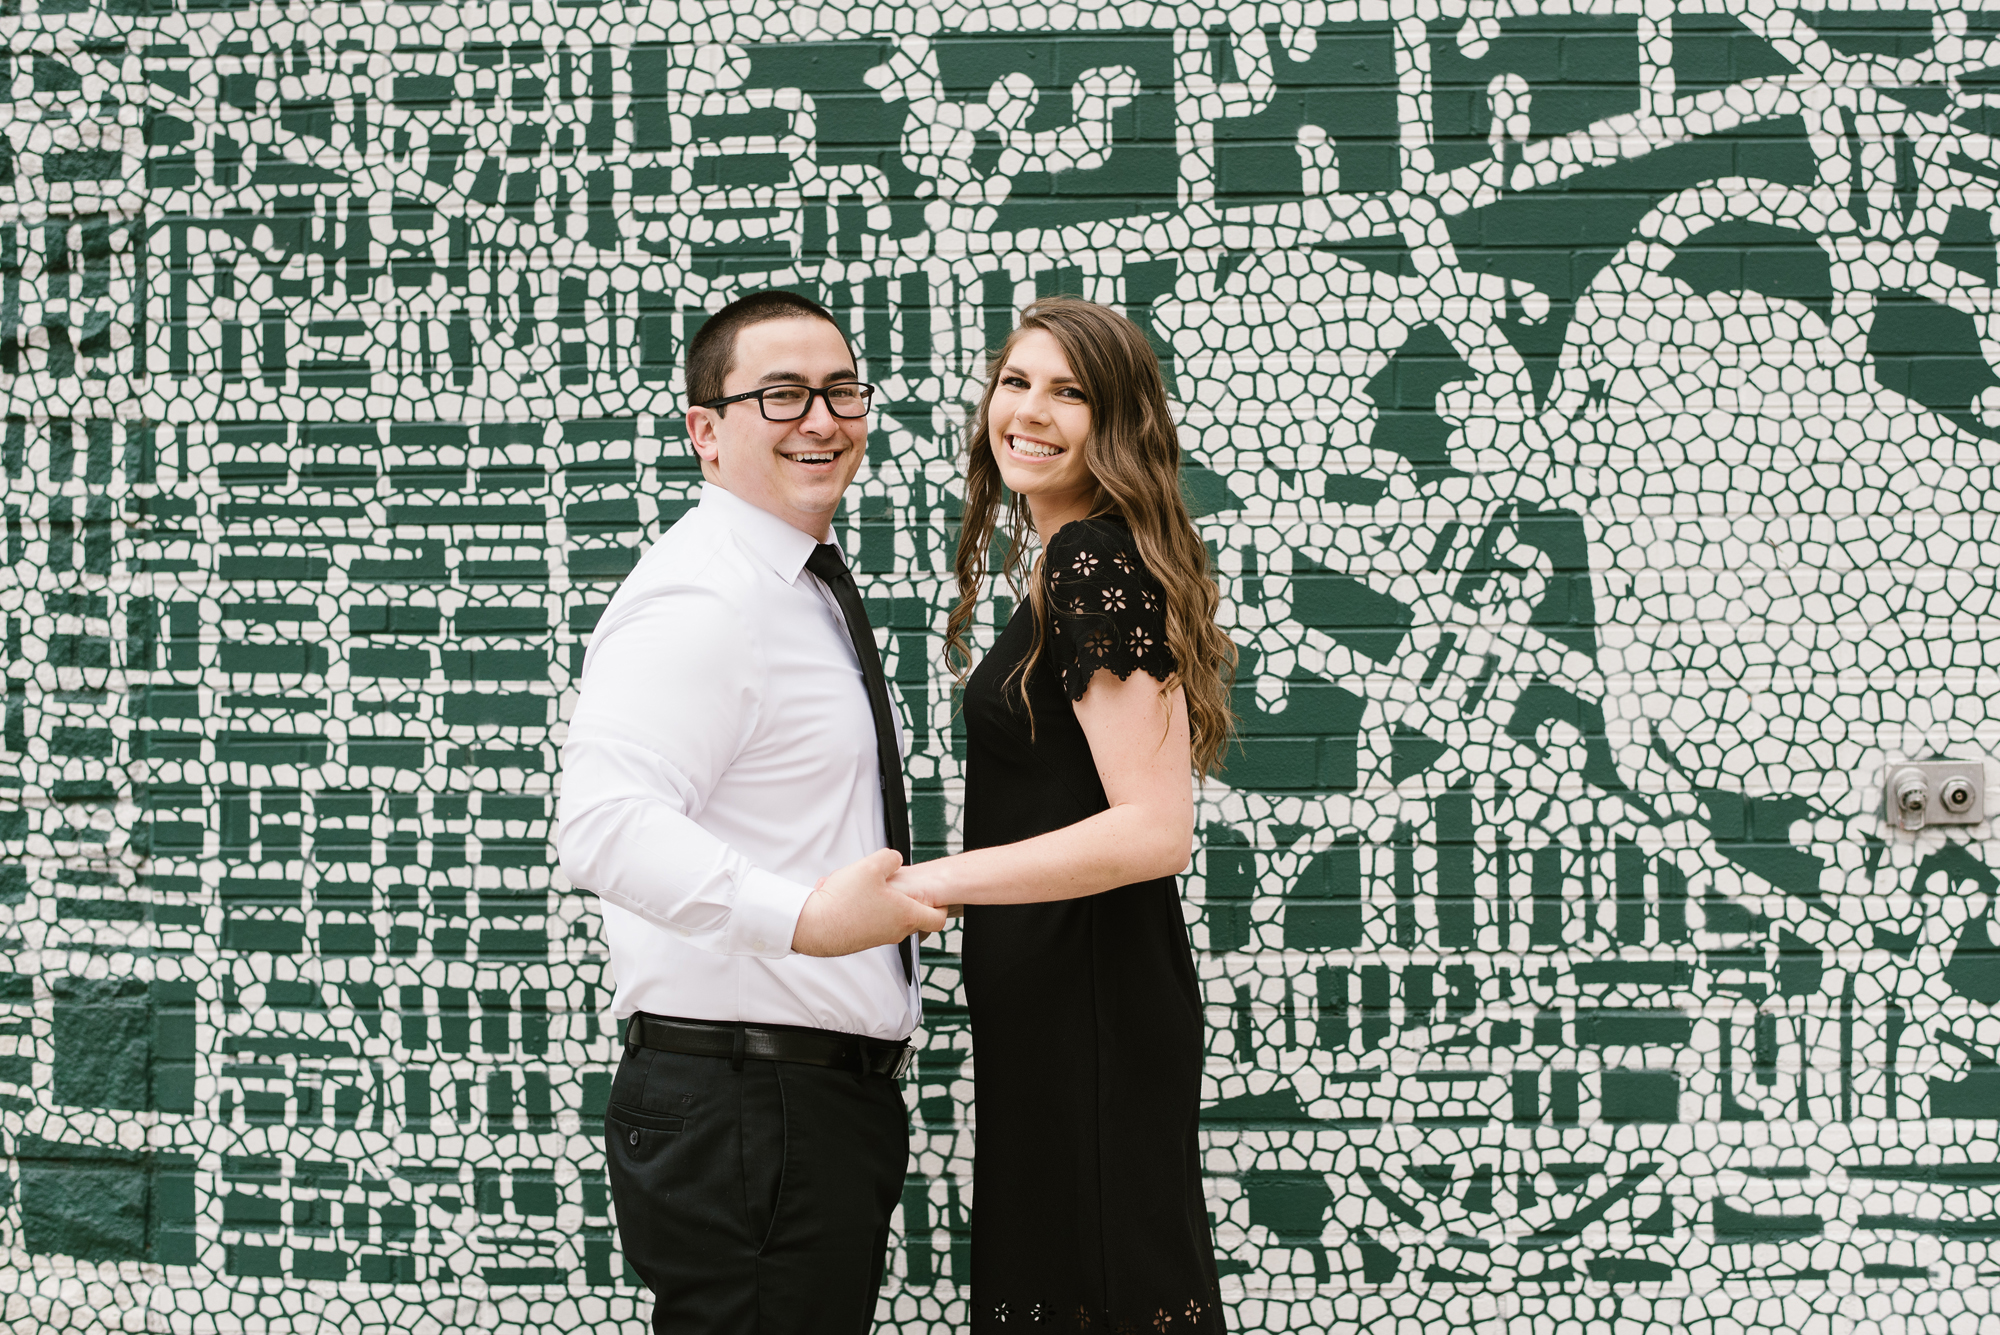 grand-rapids-downtown-spring-engagement-session (2).jpg